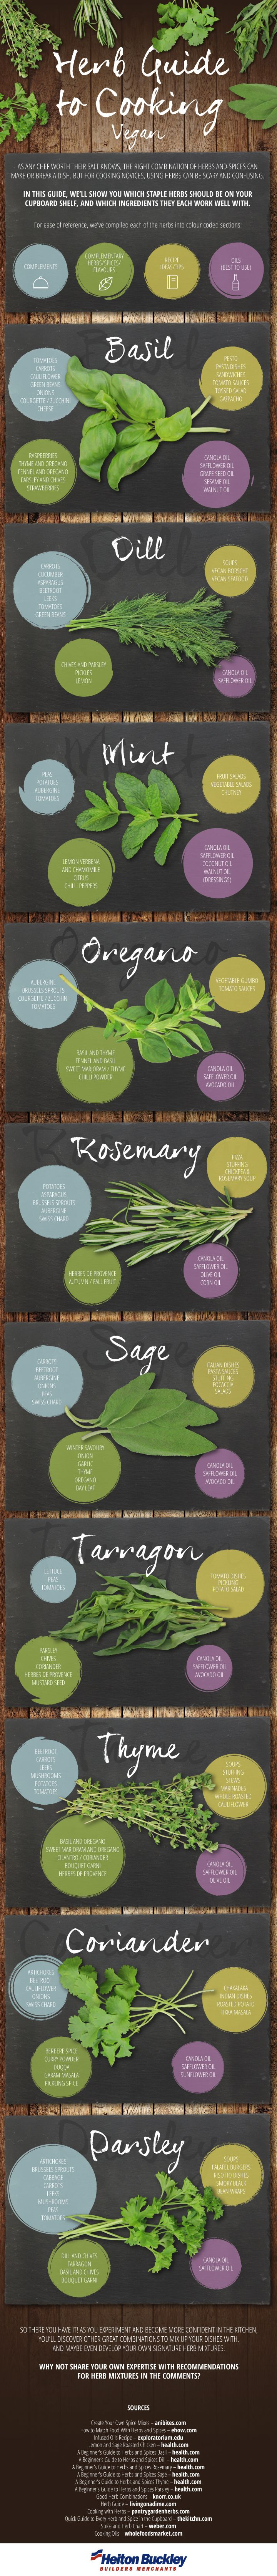 A Herb Guide to Cooking